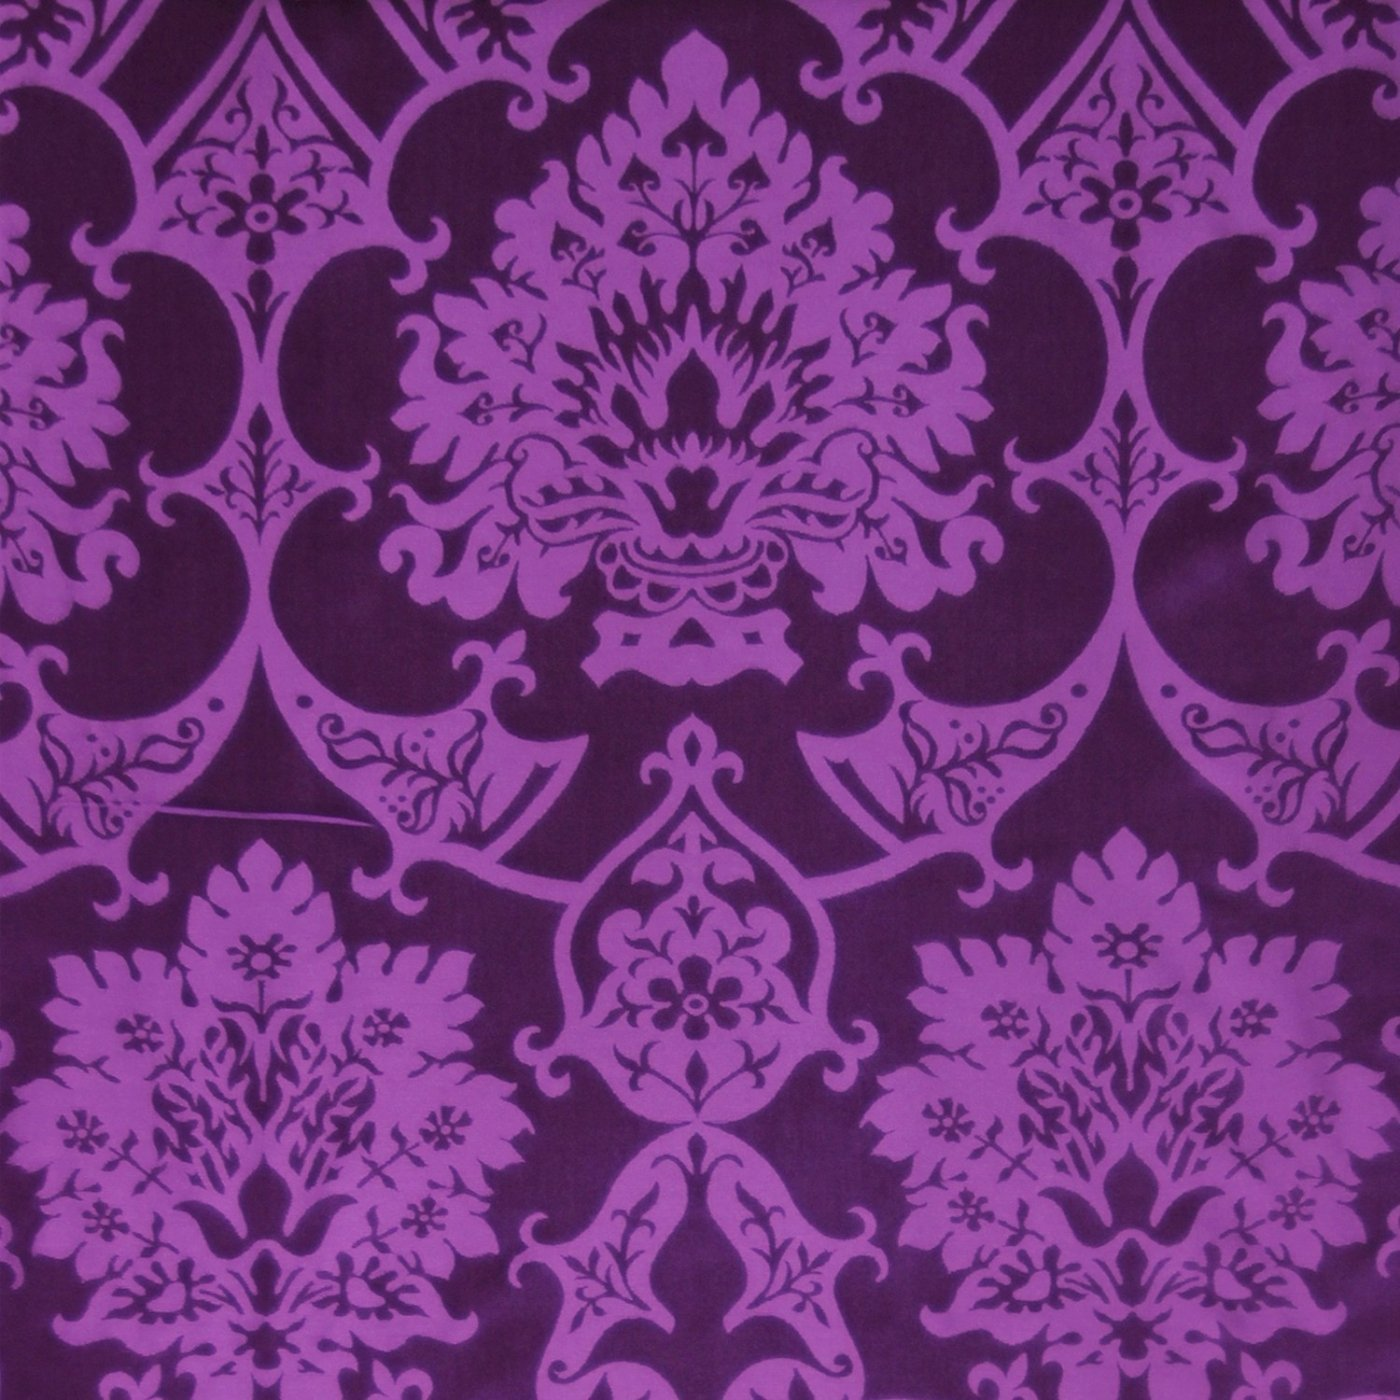 Gothic Dalmatic in Royal Purple Gothic with Green St Nicolas Orphreys - Watts & Co. (international)